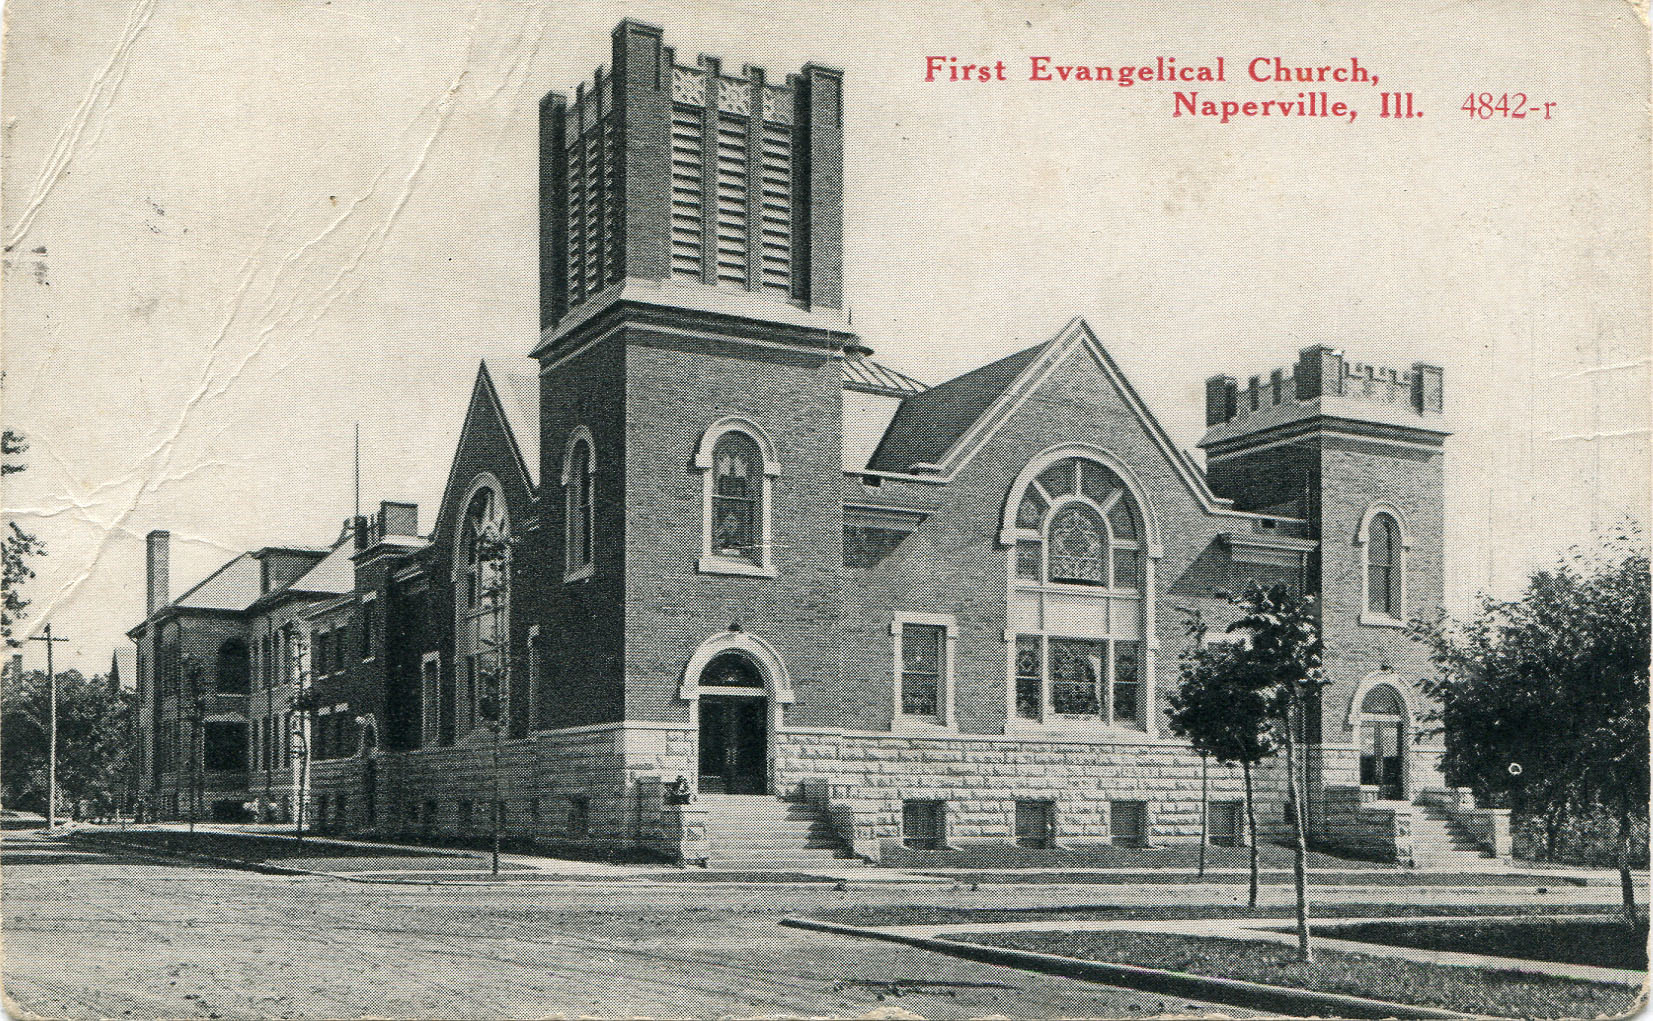 First Evangelical Church postcard